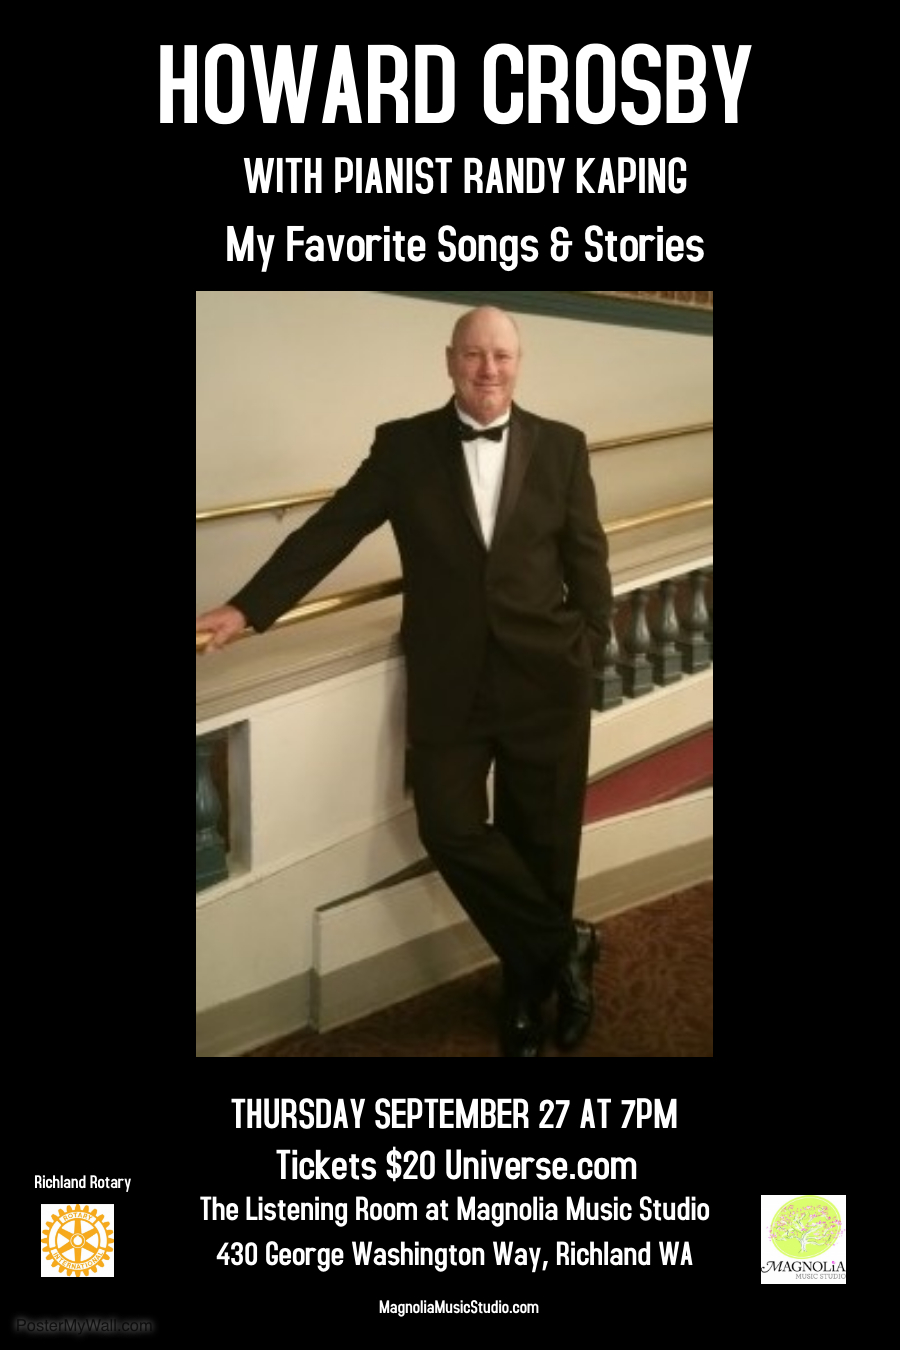 Howard Crosby with pianist Randy Kaping Sept 27, 7pm Tickets:  Universe.com/HowardCrosbyAtMagnolia